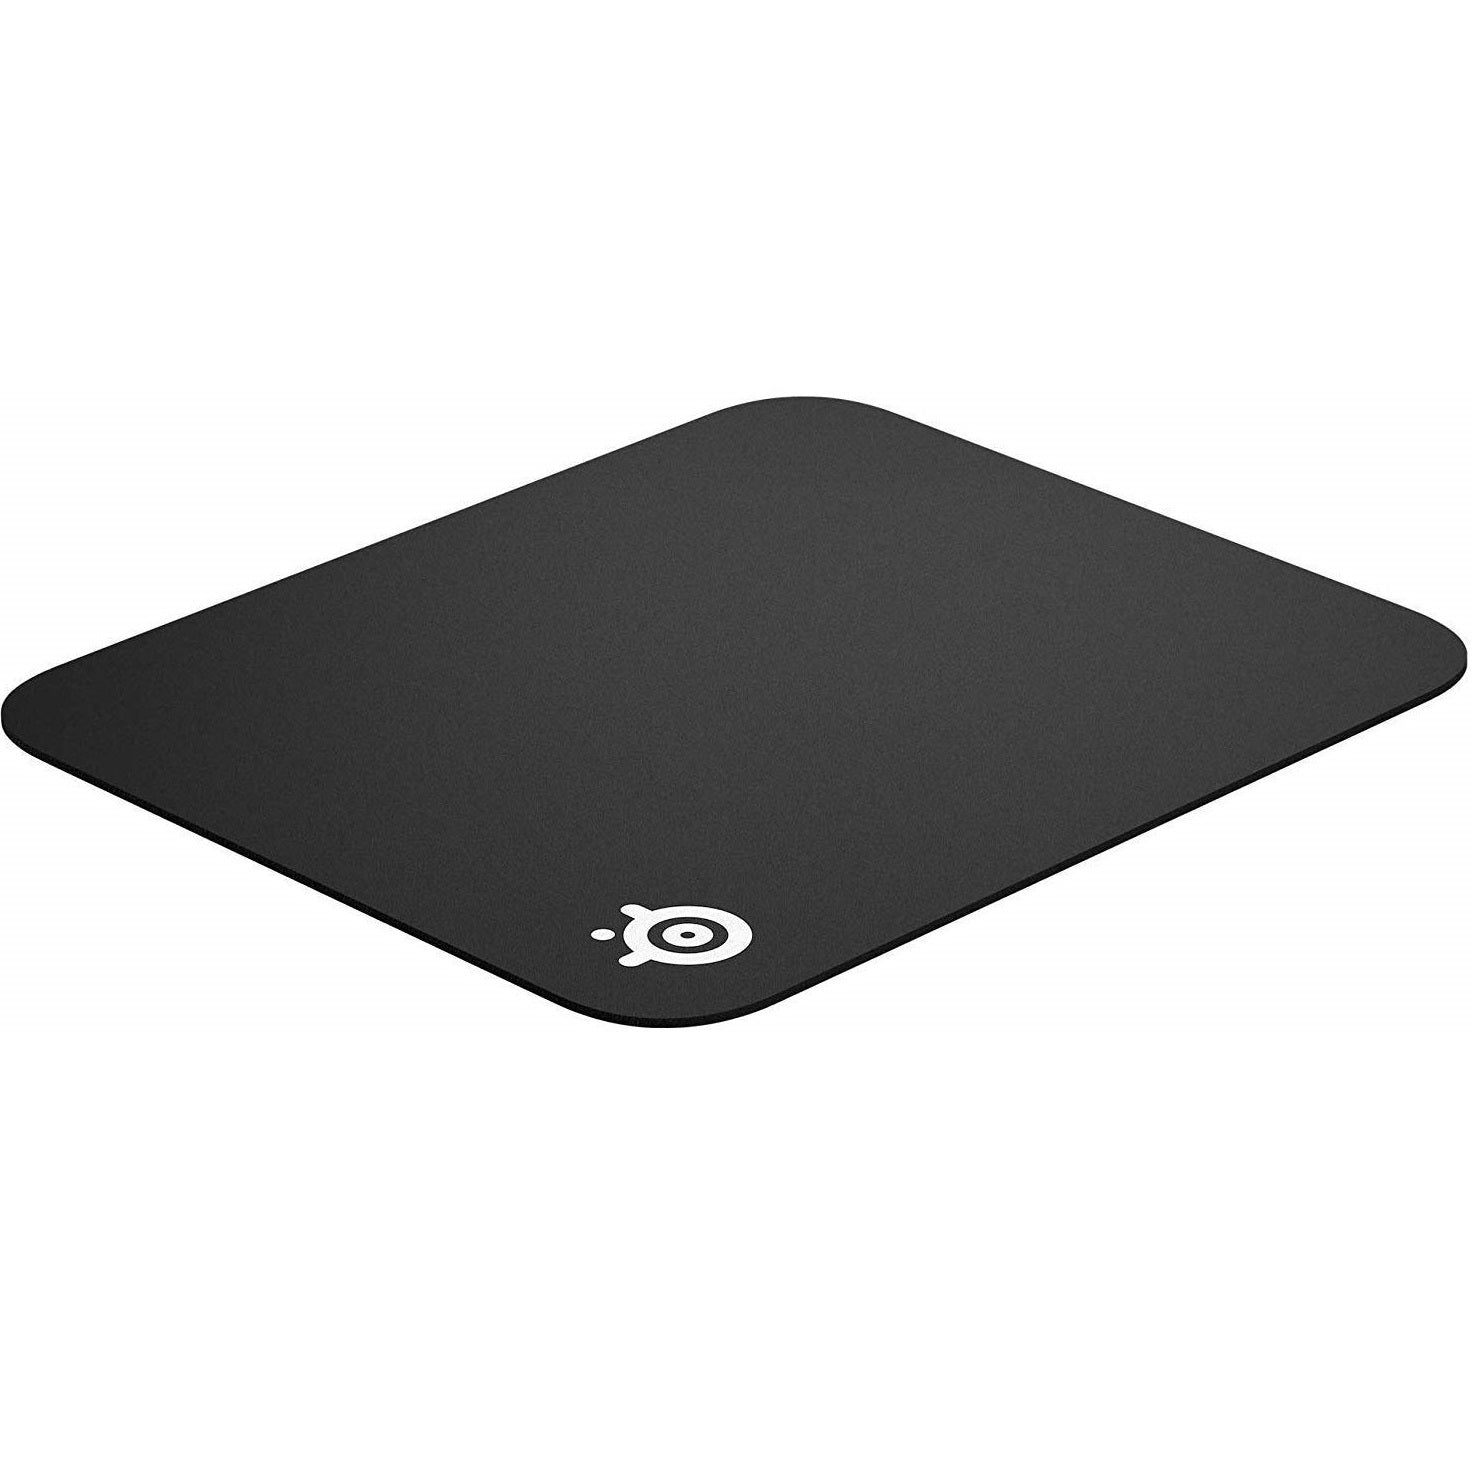 SteelSeries QcK Mini 63005 Gaming Mouse Pad